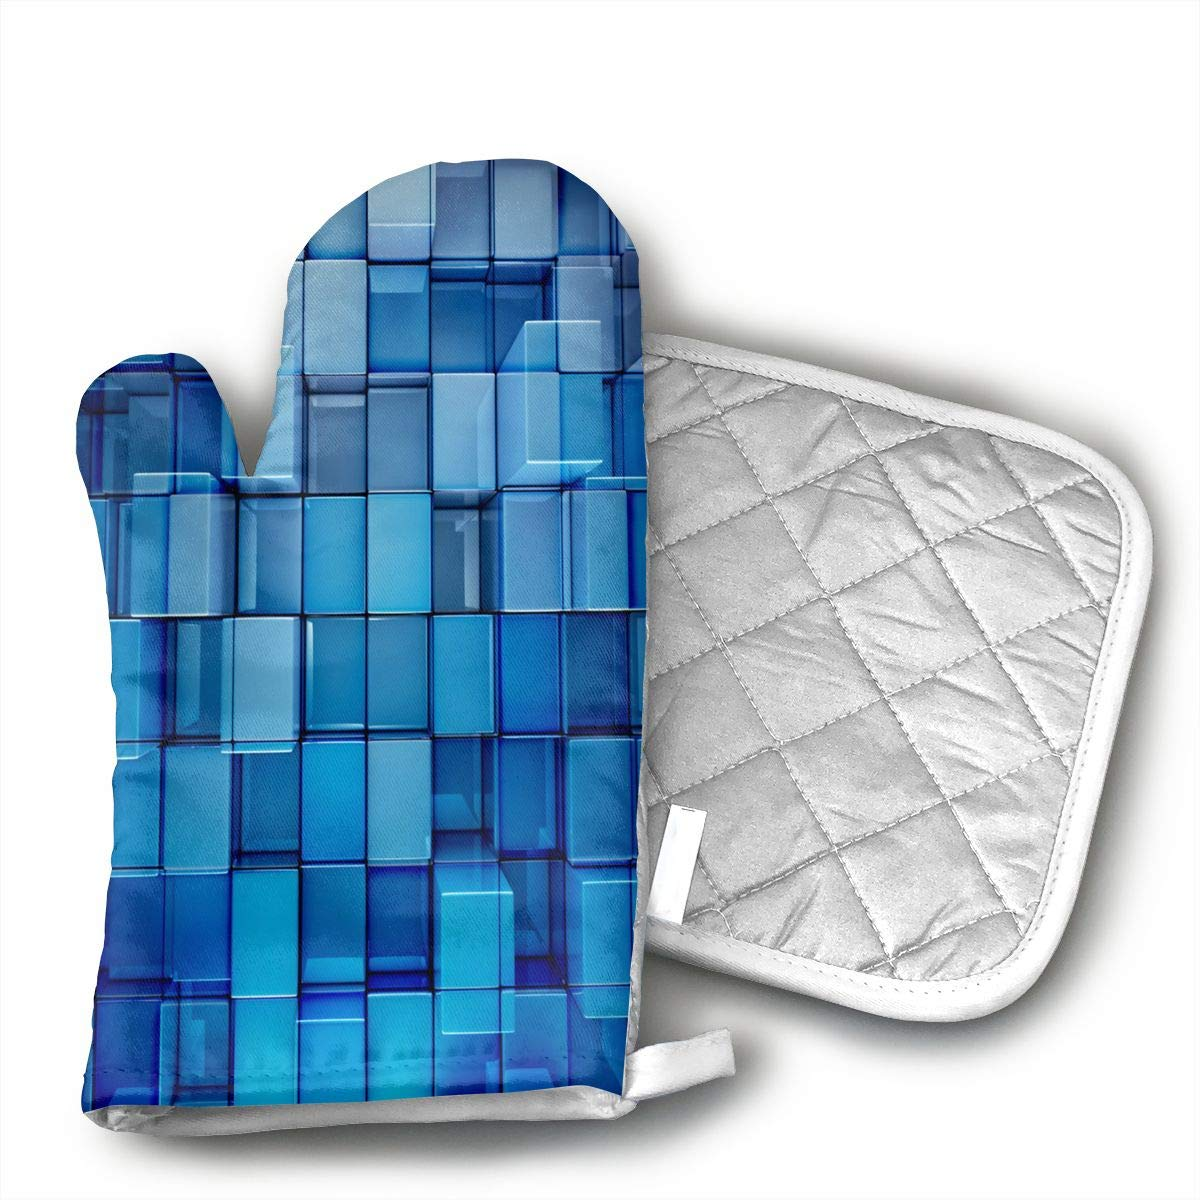 QEJIU 3D Cubes Oven Mitts - air Non-Slip Kitchen Oven Gloves Cooking,Baking,Grilling,Barbecue Potholders,